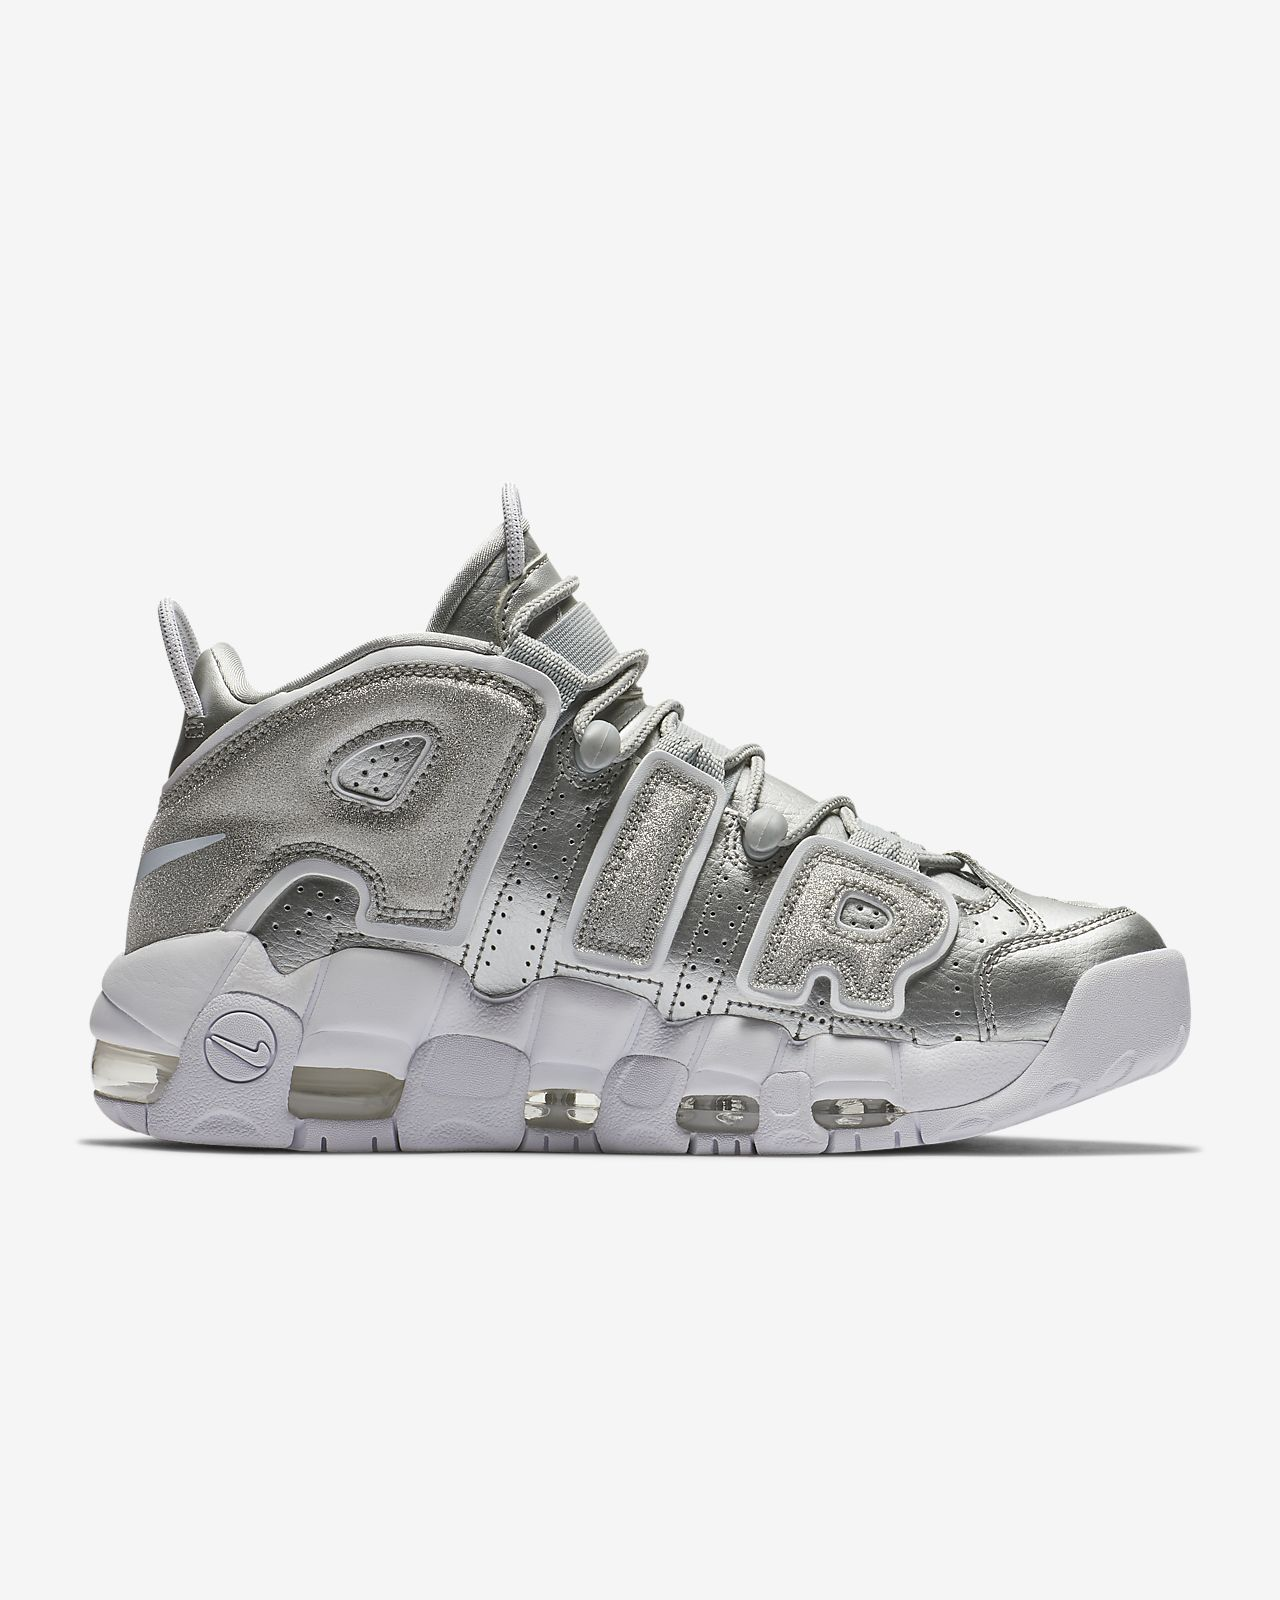 separation shoes a67b8 af042 ... Nike Air More Uptempo Women s Shoe